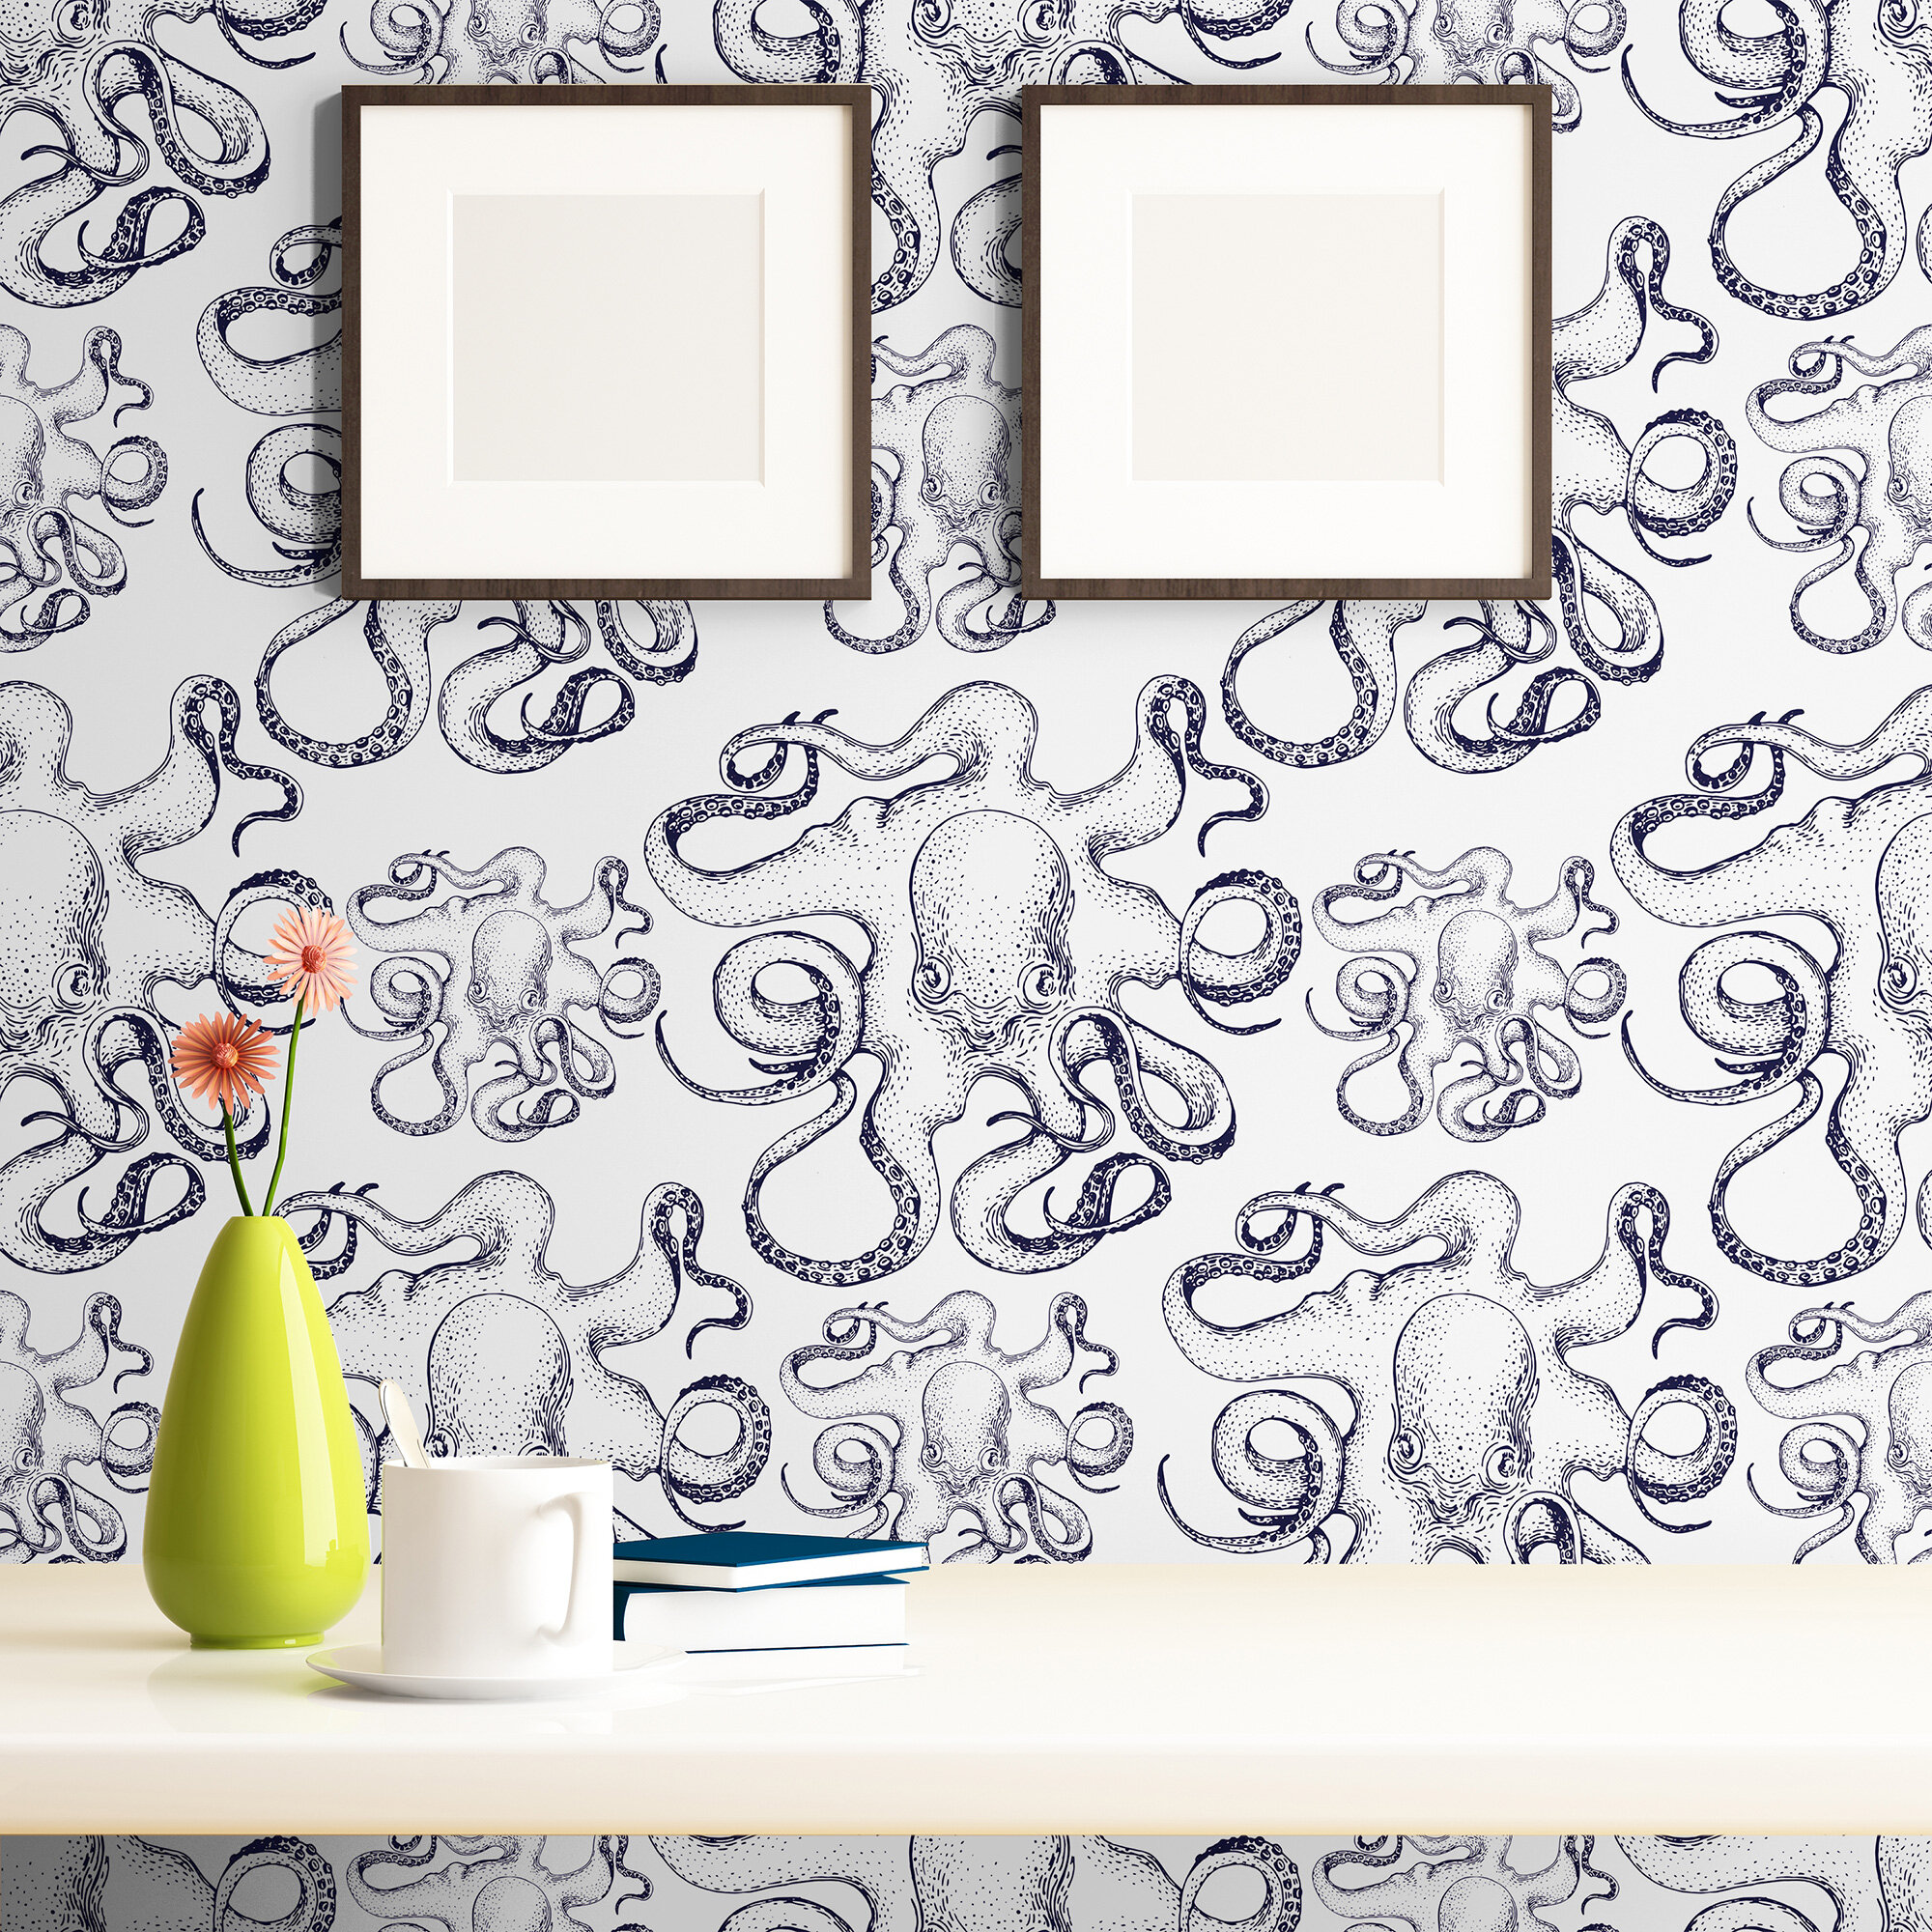 Longshore Tides Arnett Fish Nautical Removable Peel And Stick Wallpaper Panel Wayfair